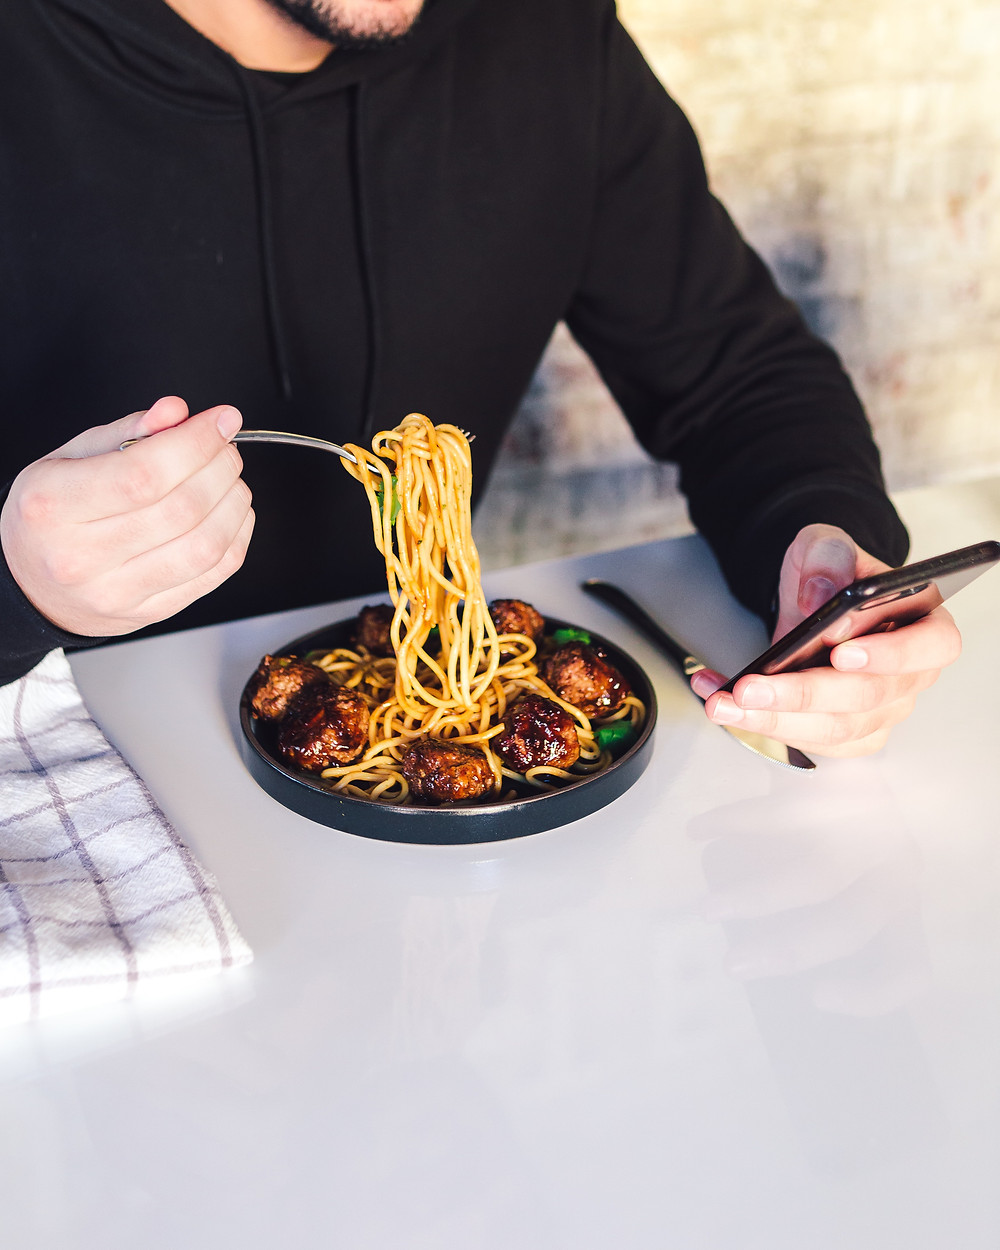 person eating spaghetti while looking at their phone